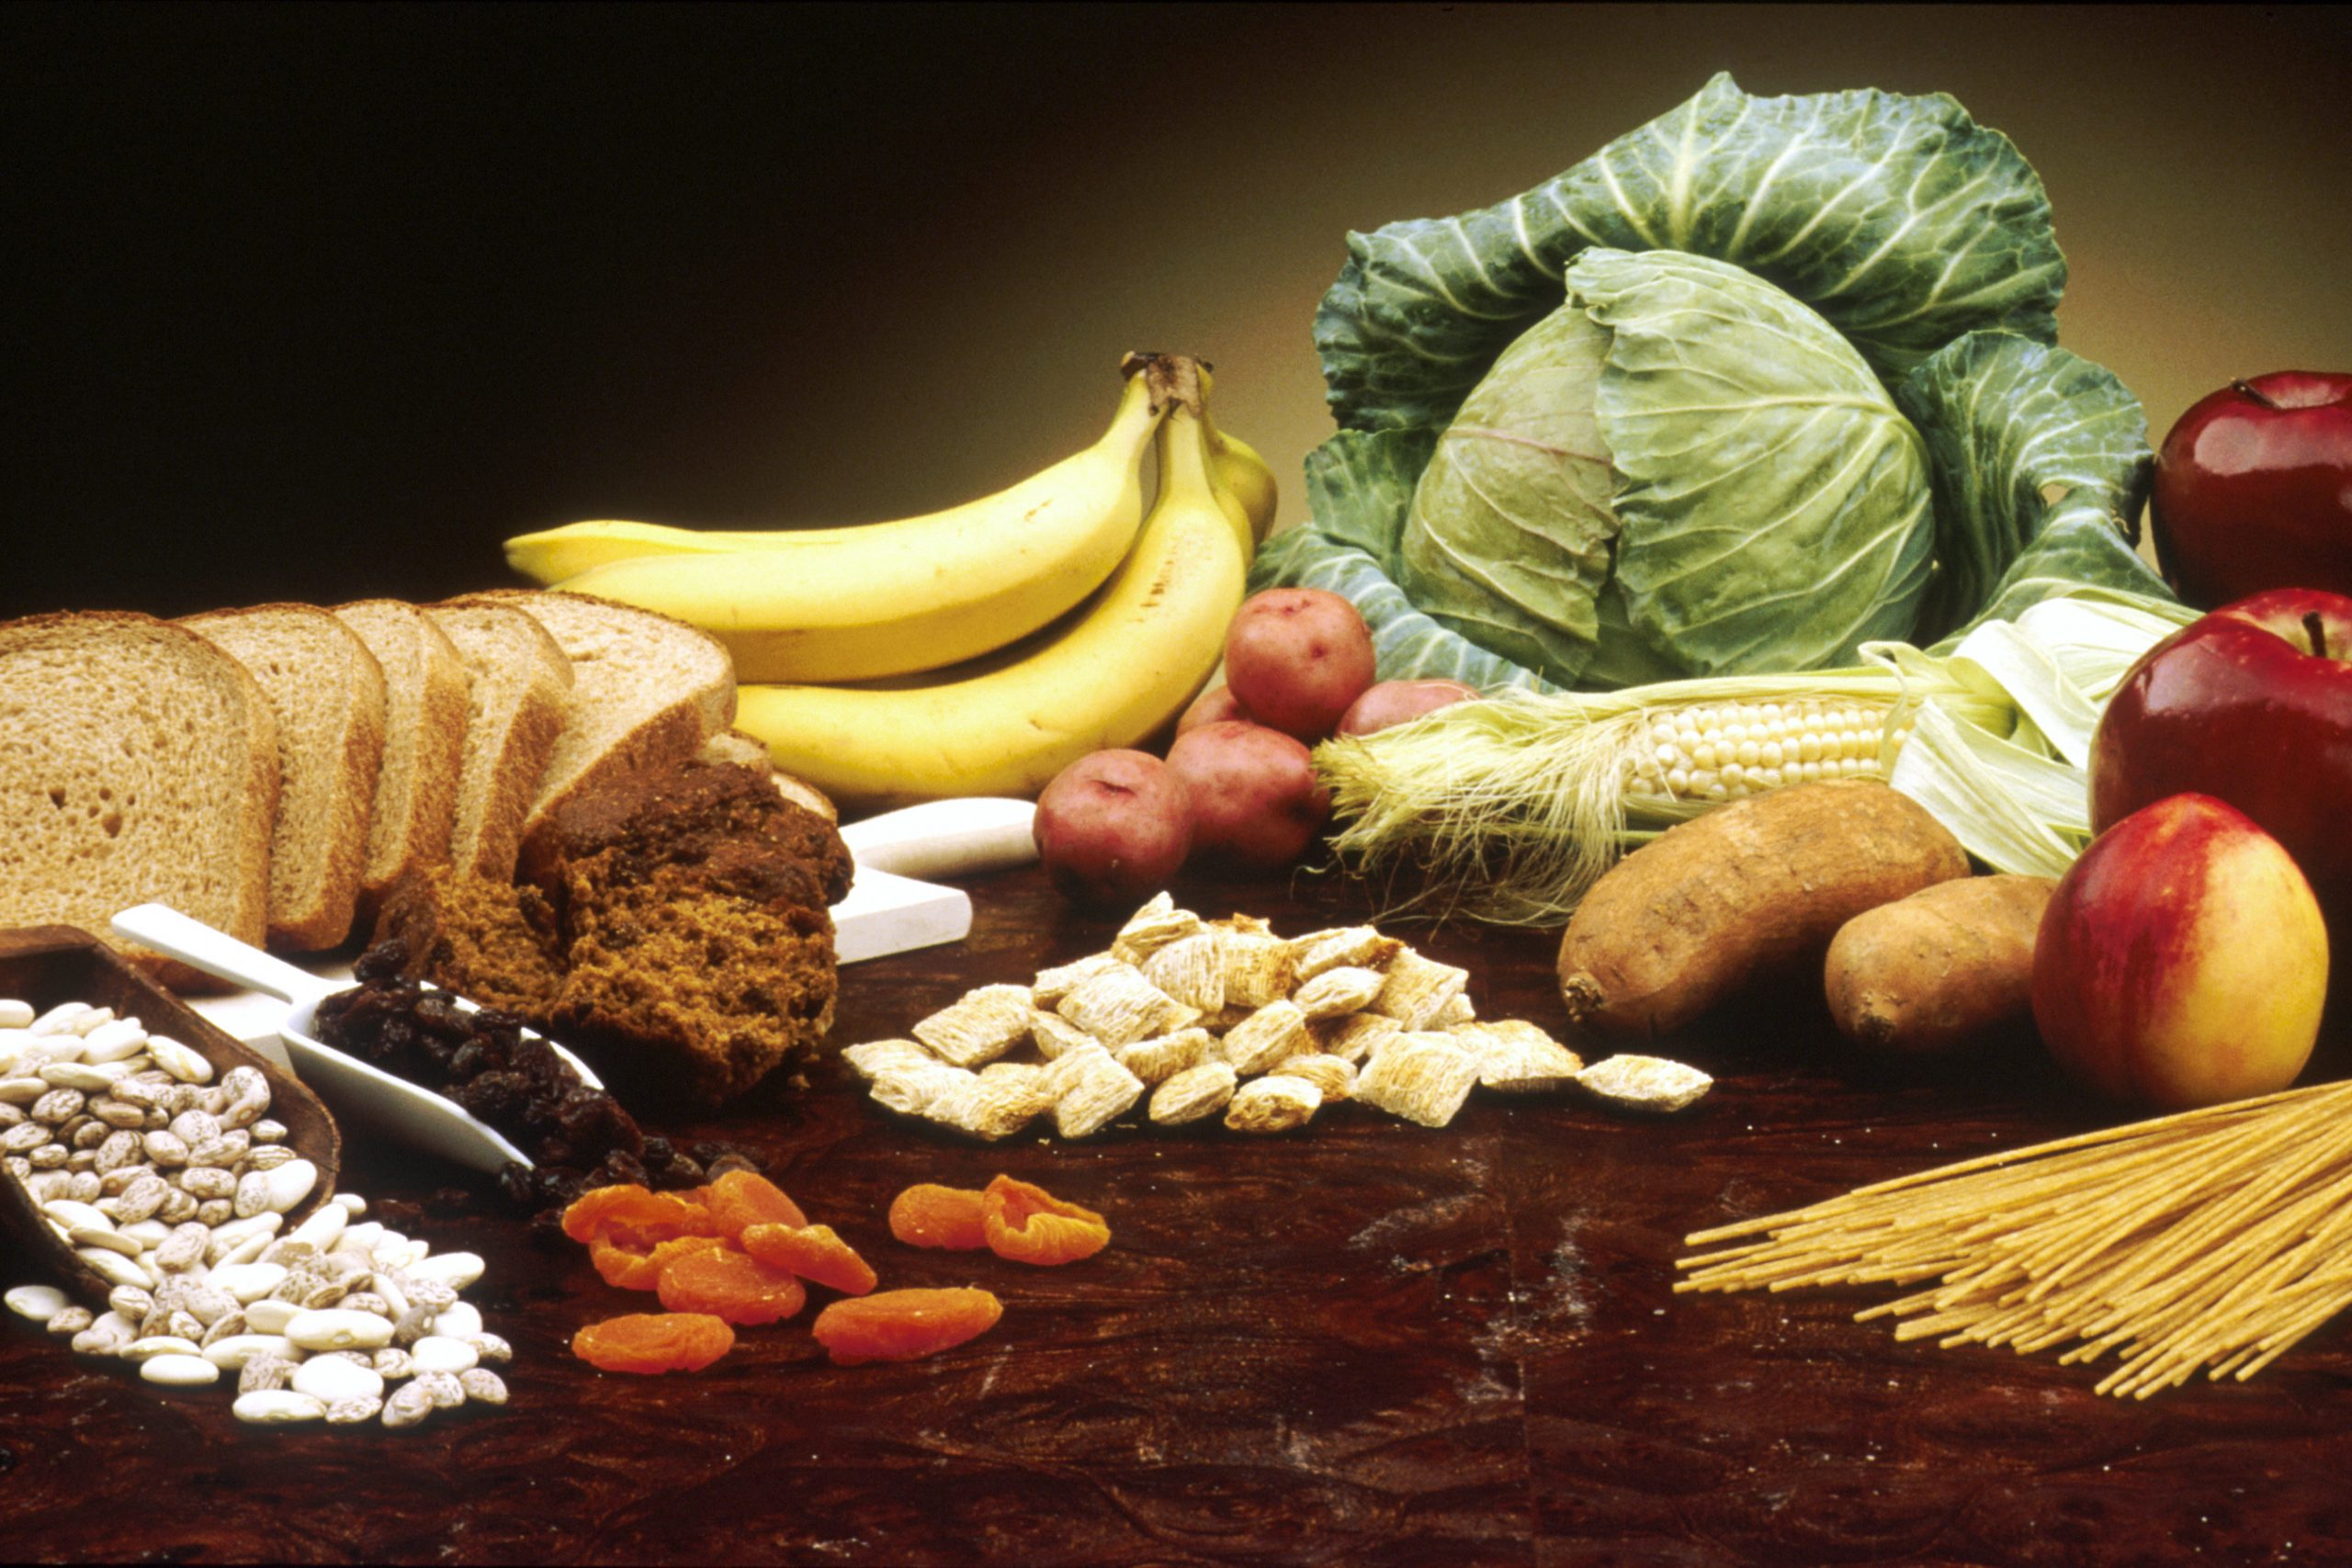 a spread of fruits, vegetables and grain products on a wooden table